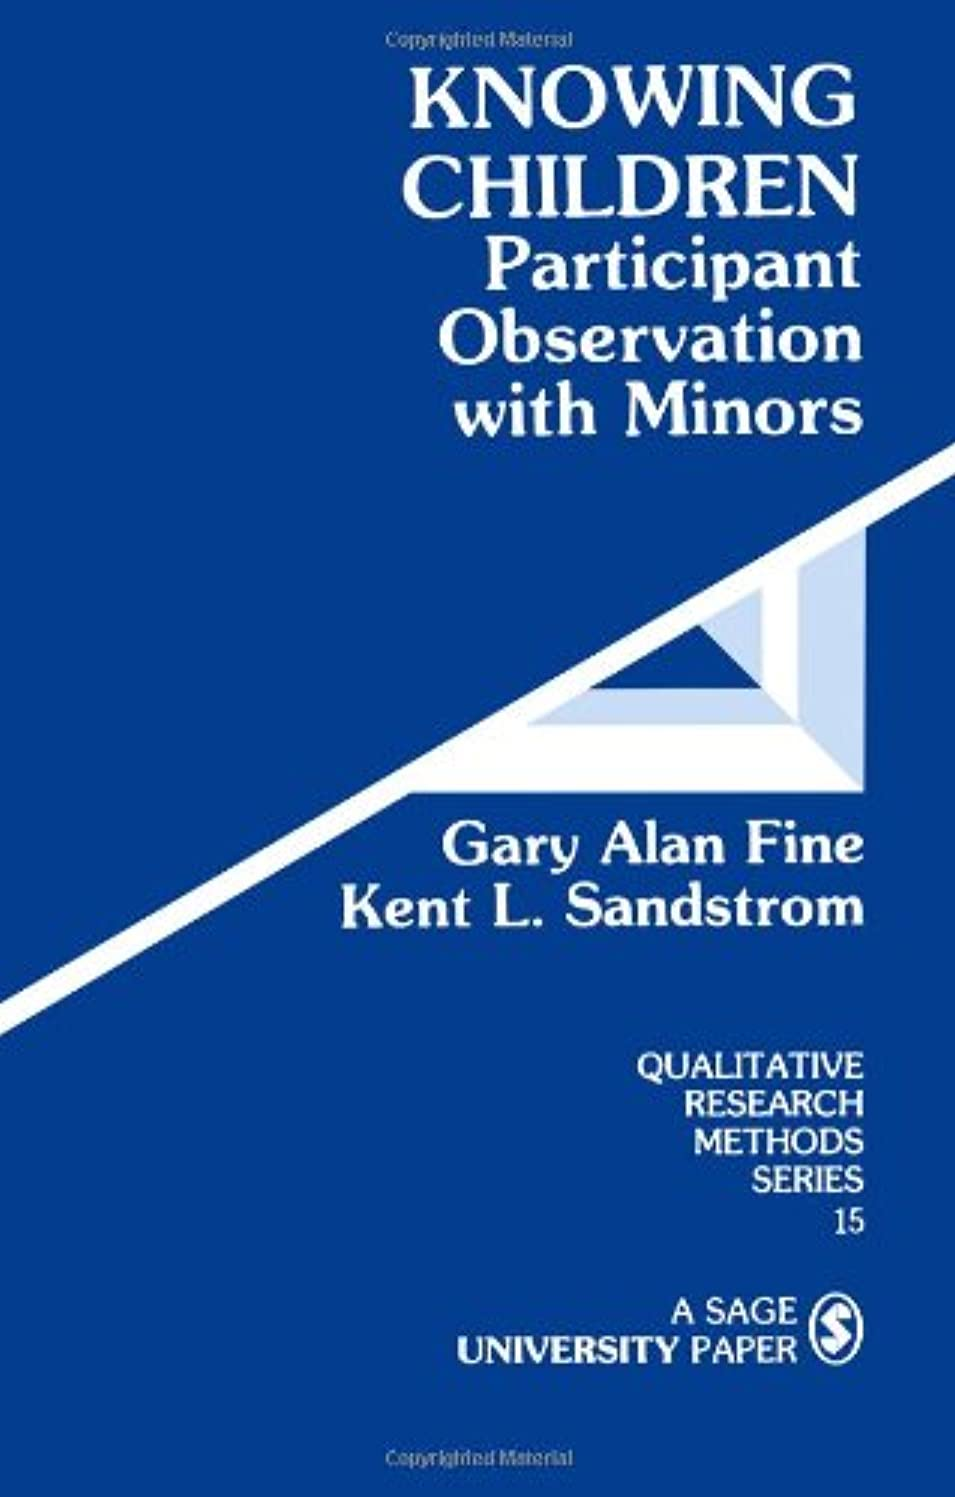 ラフ睡眠ハーネス相互接続Knowing Children: Participant Observation with Minors (Qualitative Research Methods)